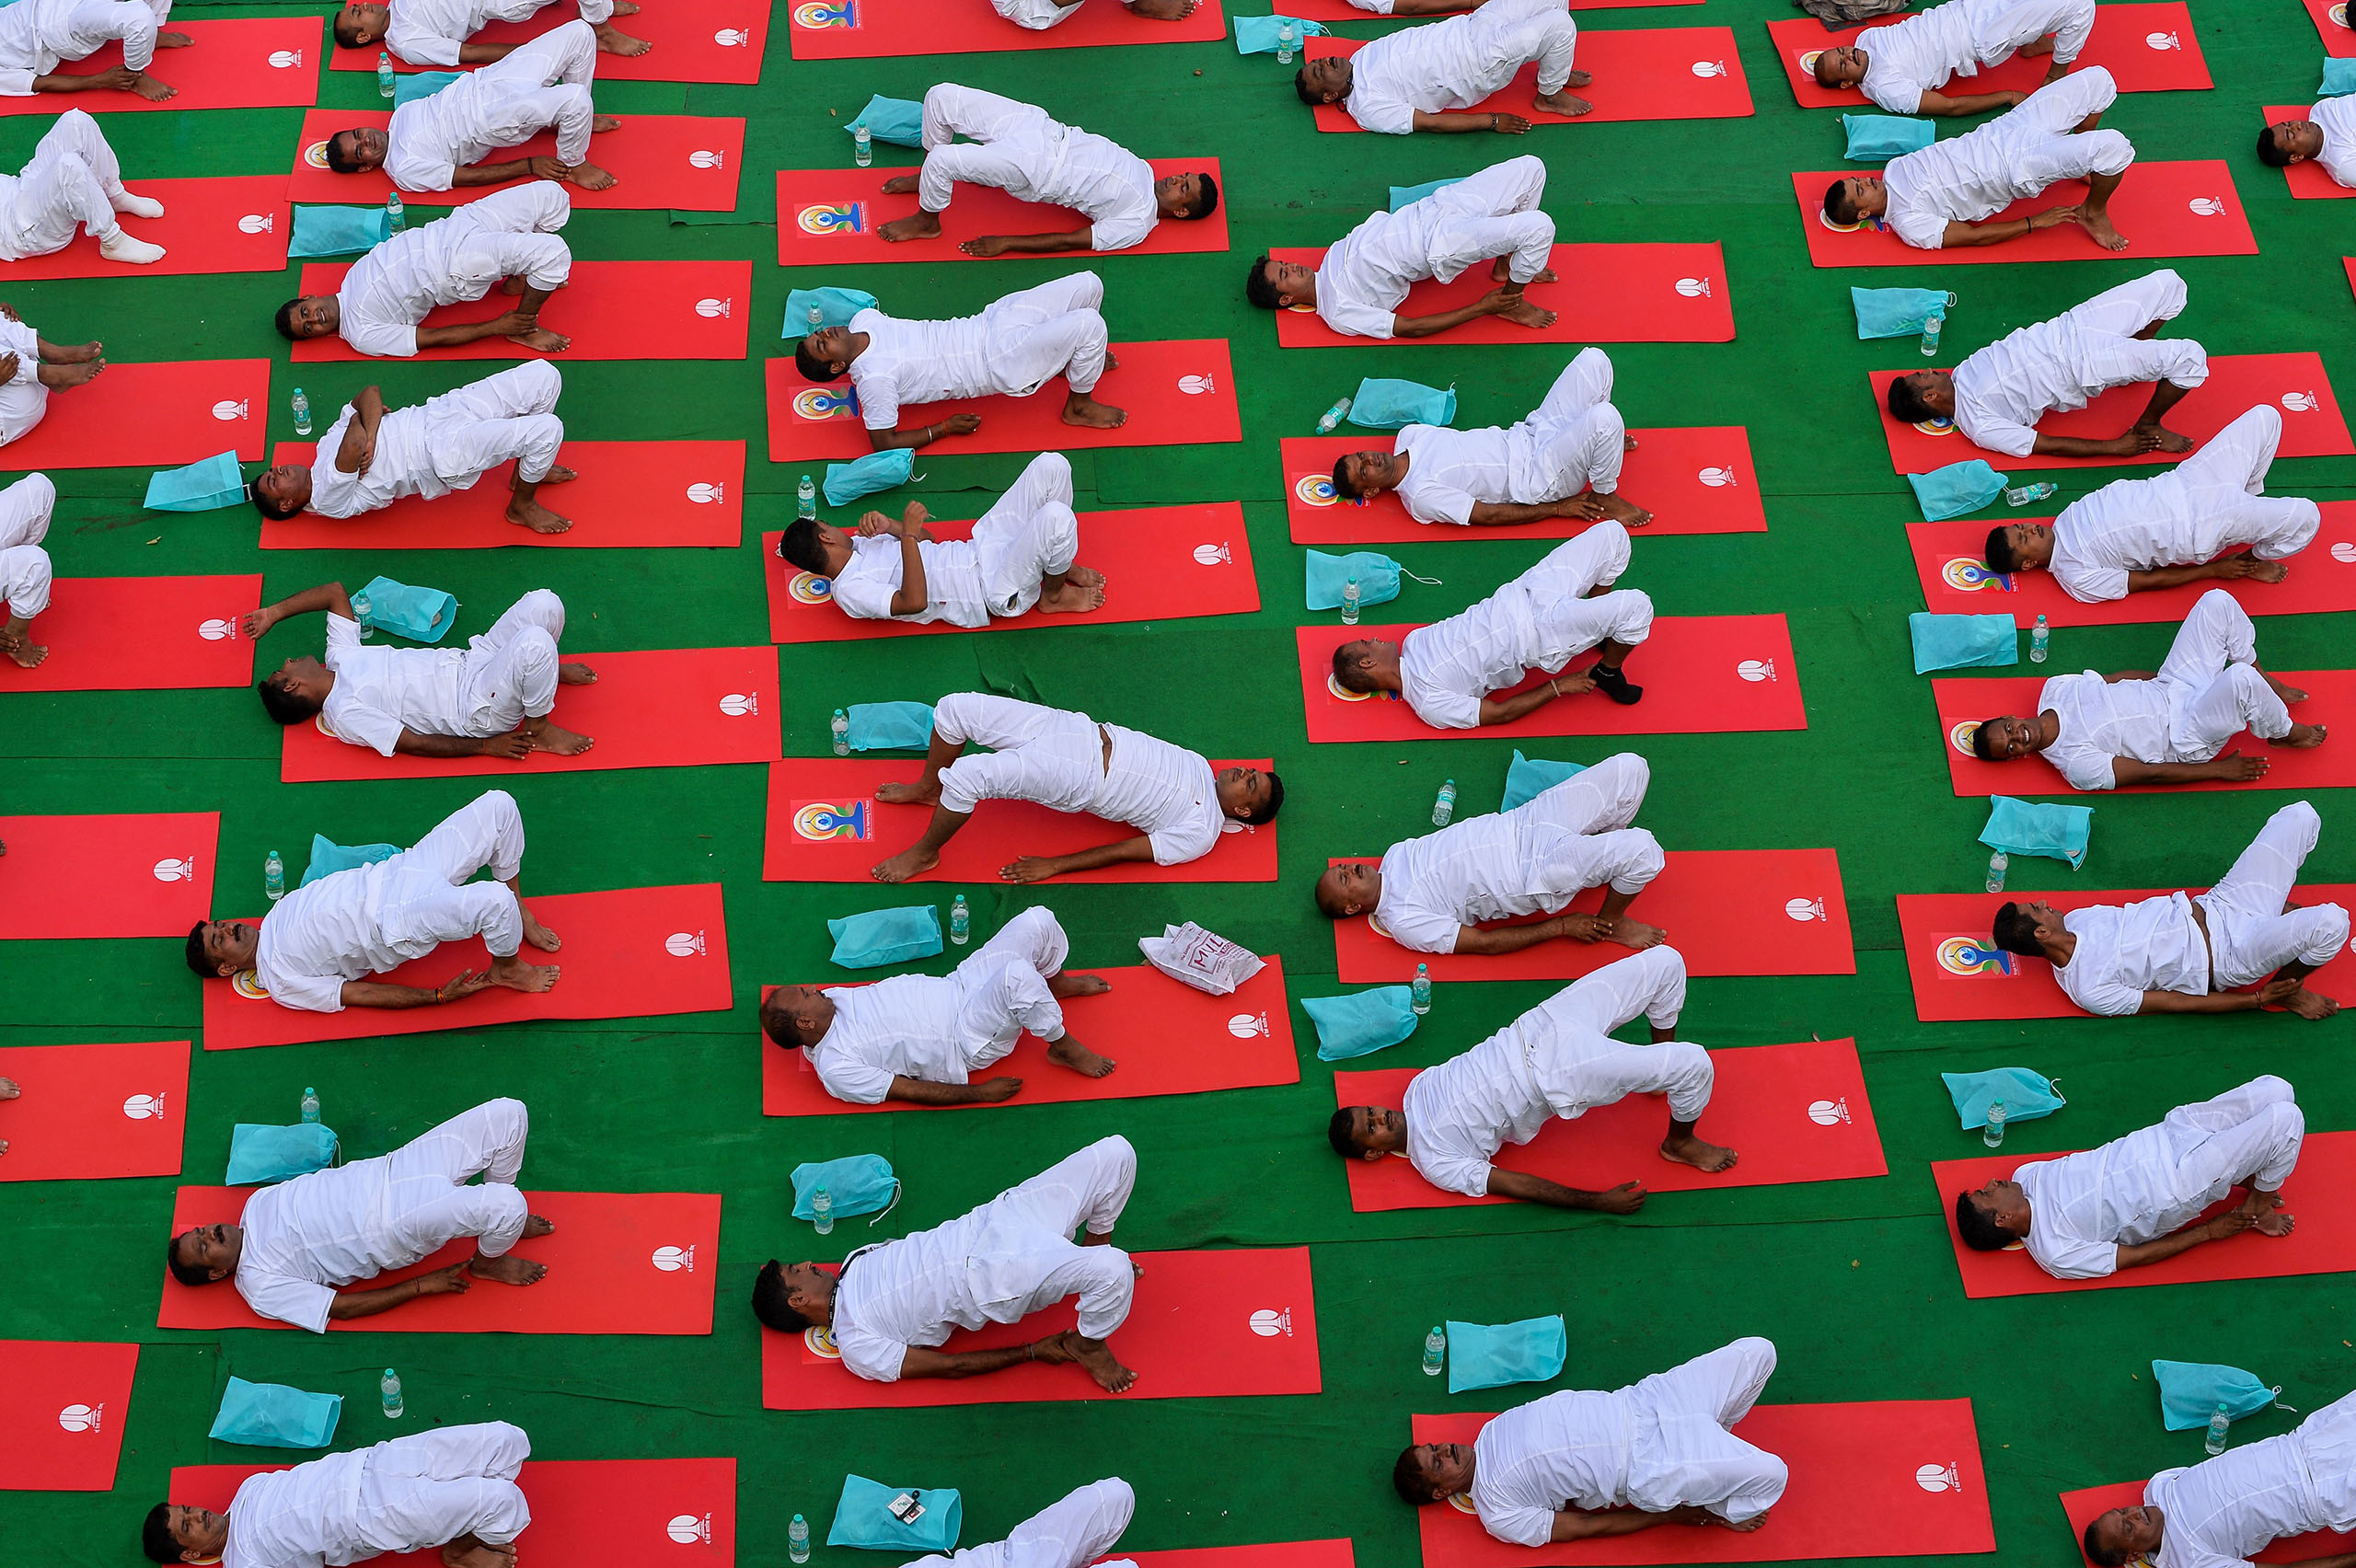 Indian yoga practitioners participate in a mass yoga session on International Yoga Day in New Delhi, India, on June 21, 2016.